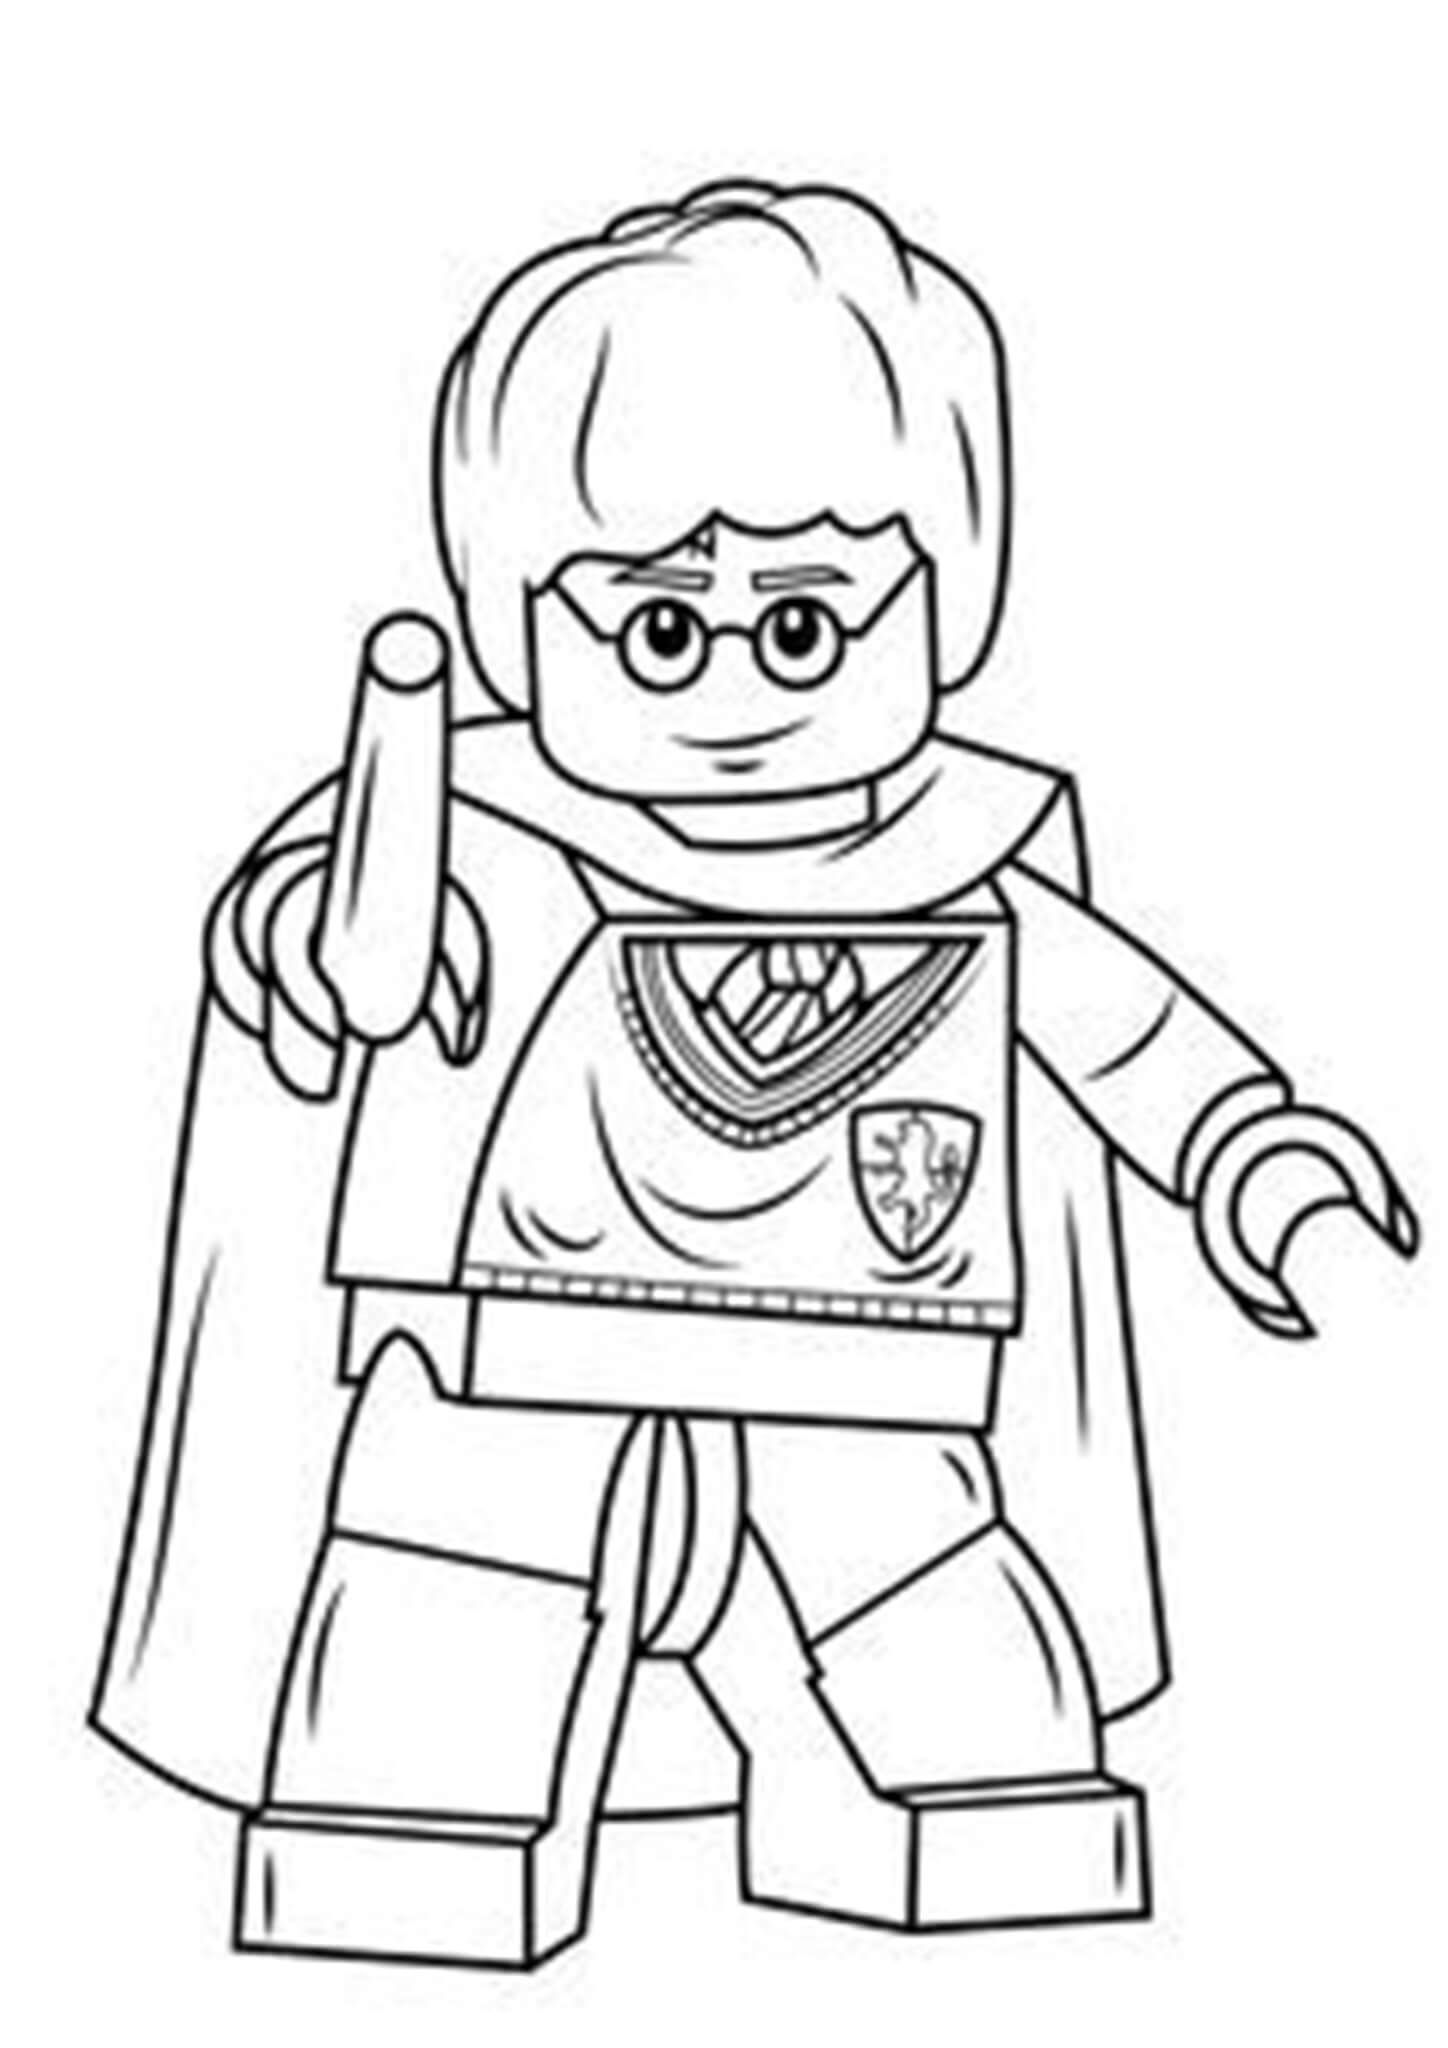 Free Easy To Print Lego Coloring Pages Lego Coloring Pages Harry Potter Coloring Pages Lego Movie Coloring Pages